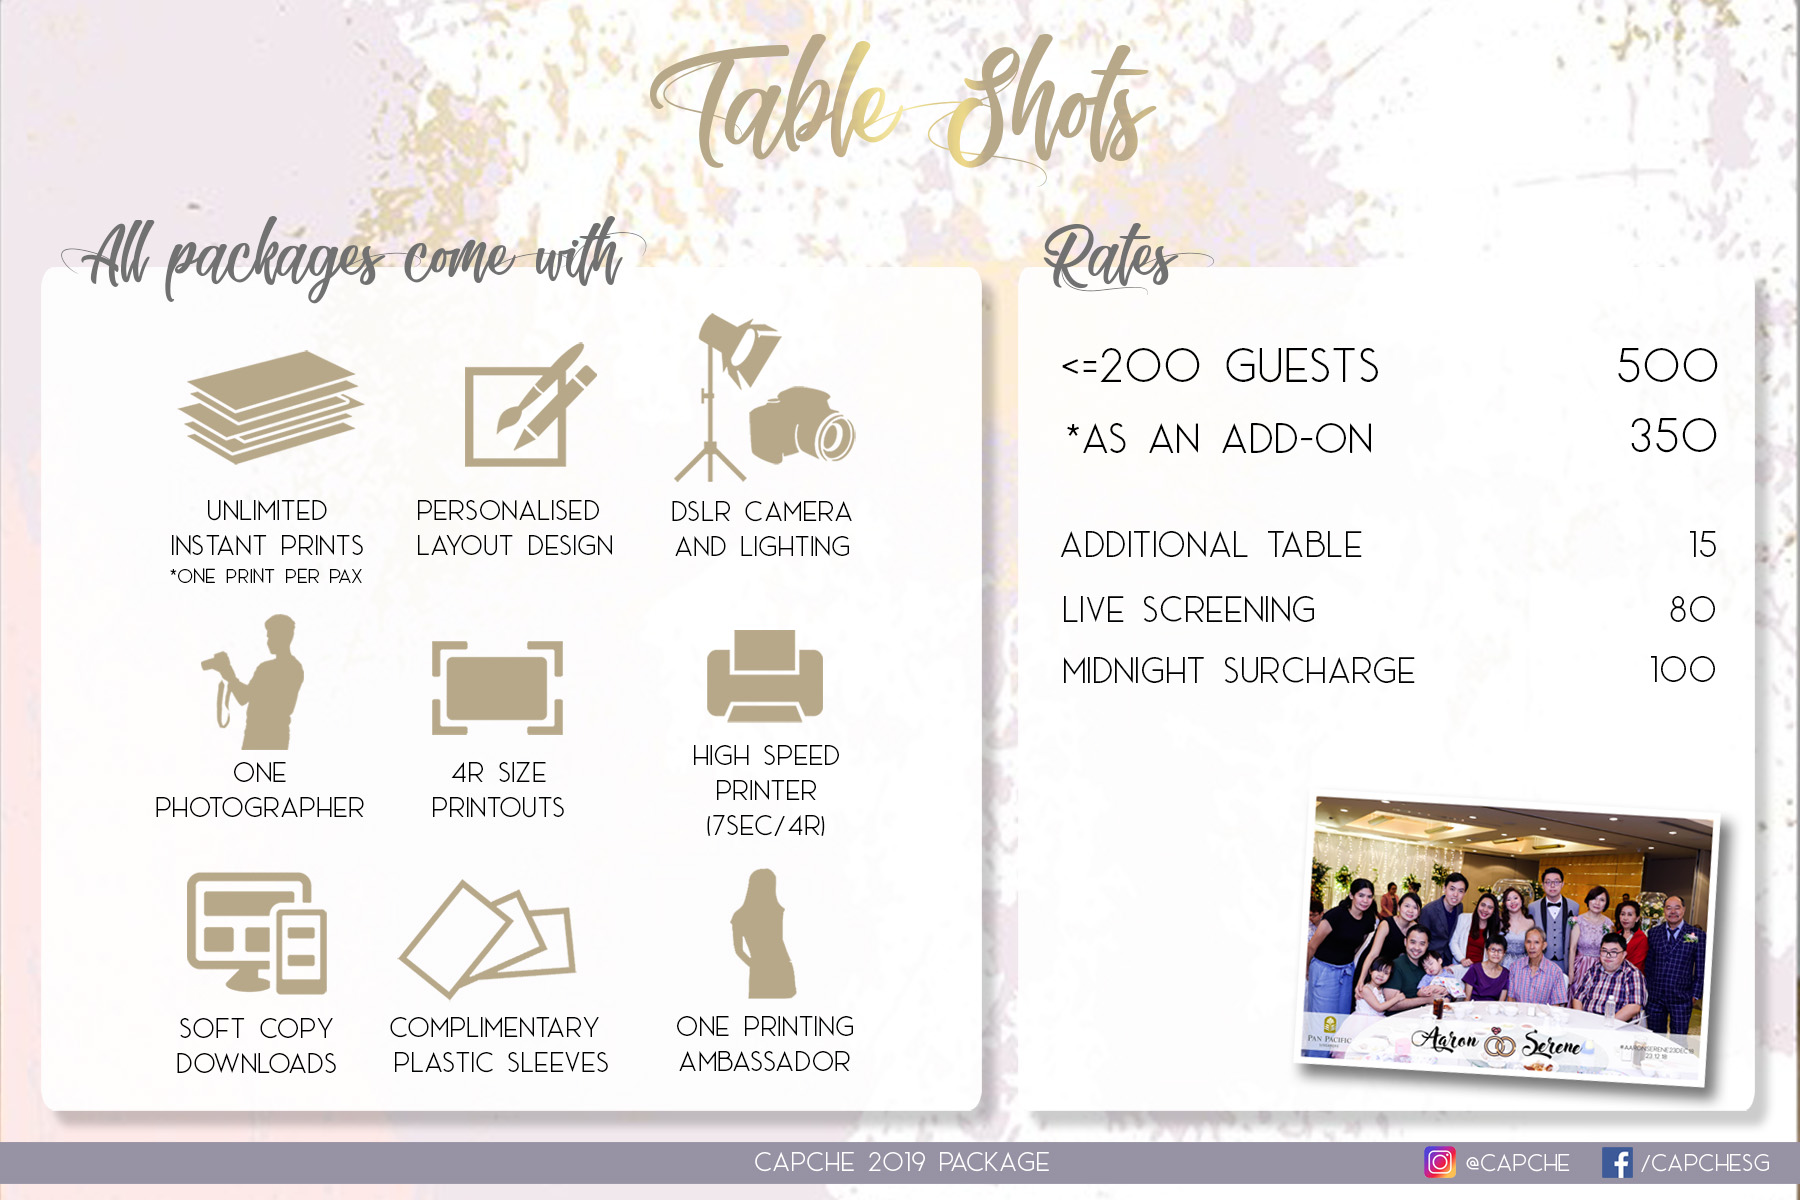 Capche Tableshots.jpg